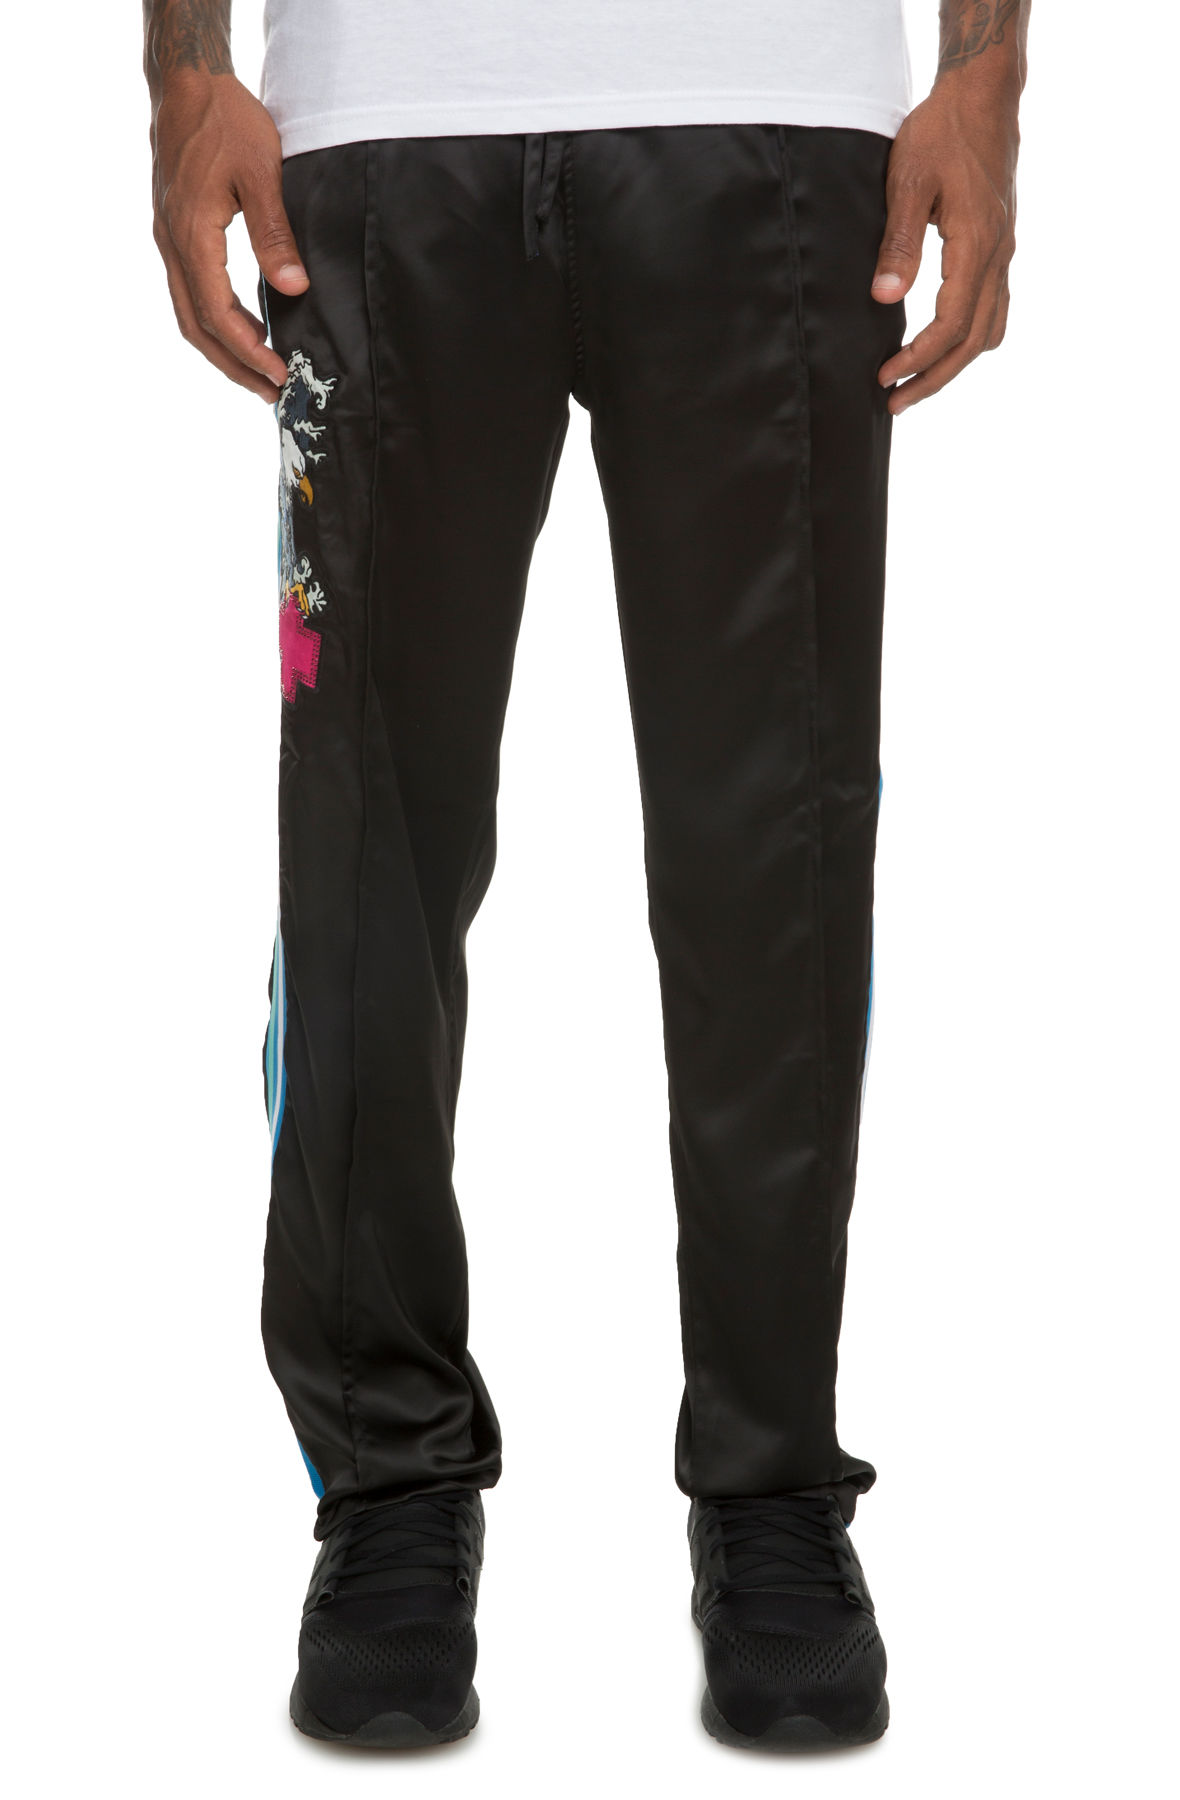 Image of The Take Flight Pants in Black